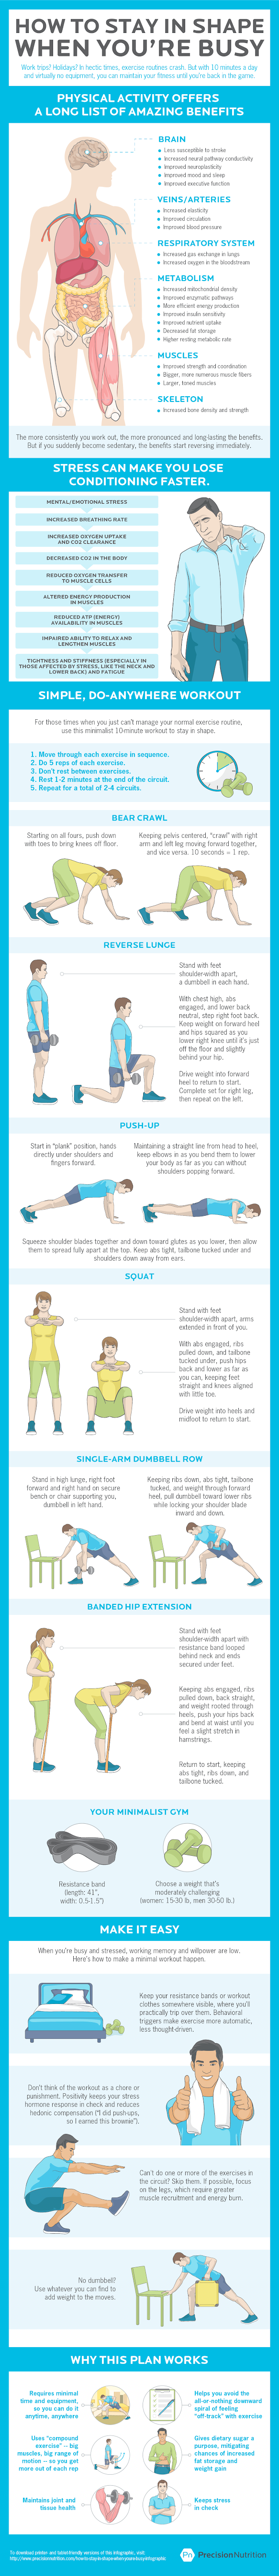 How to stay in shape when you're busy #infographic